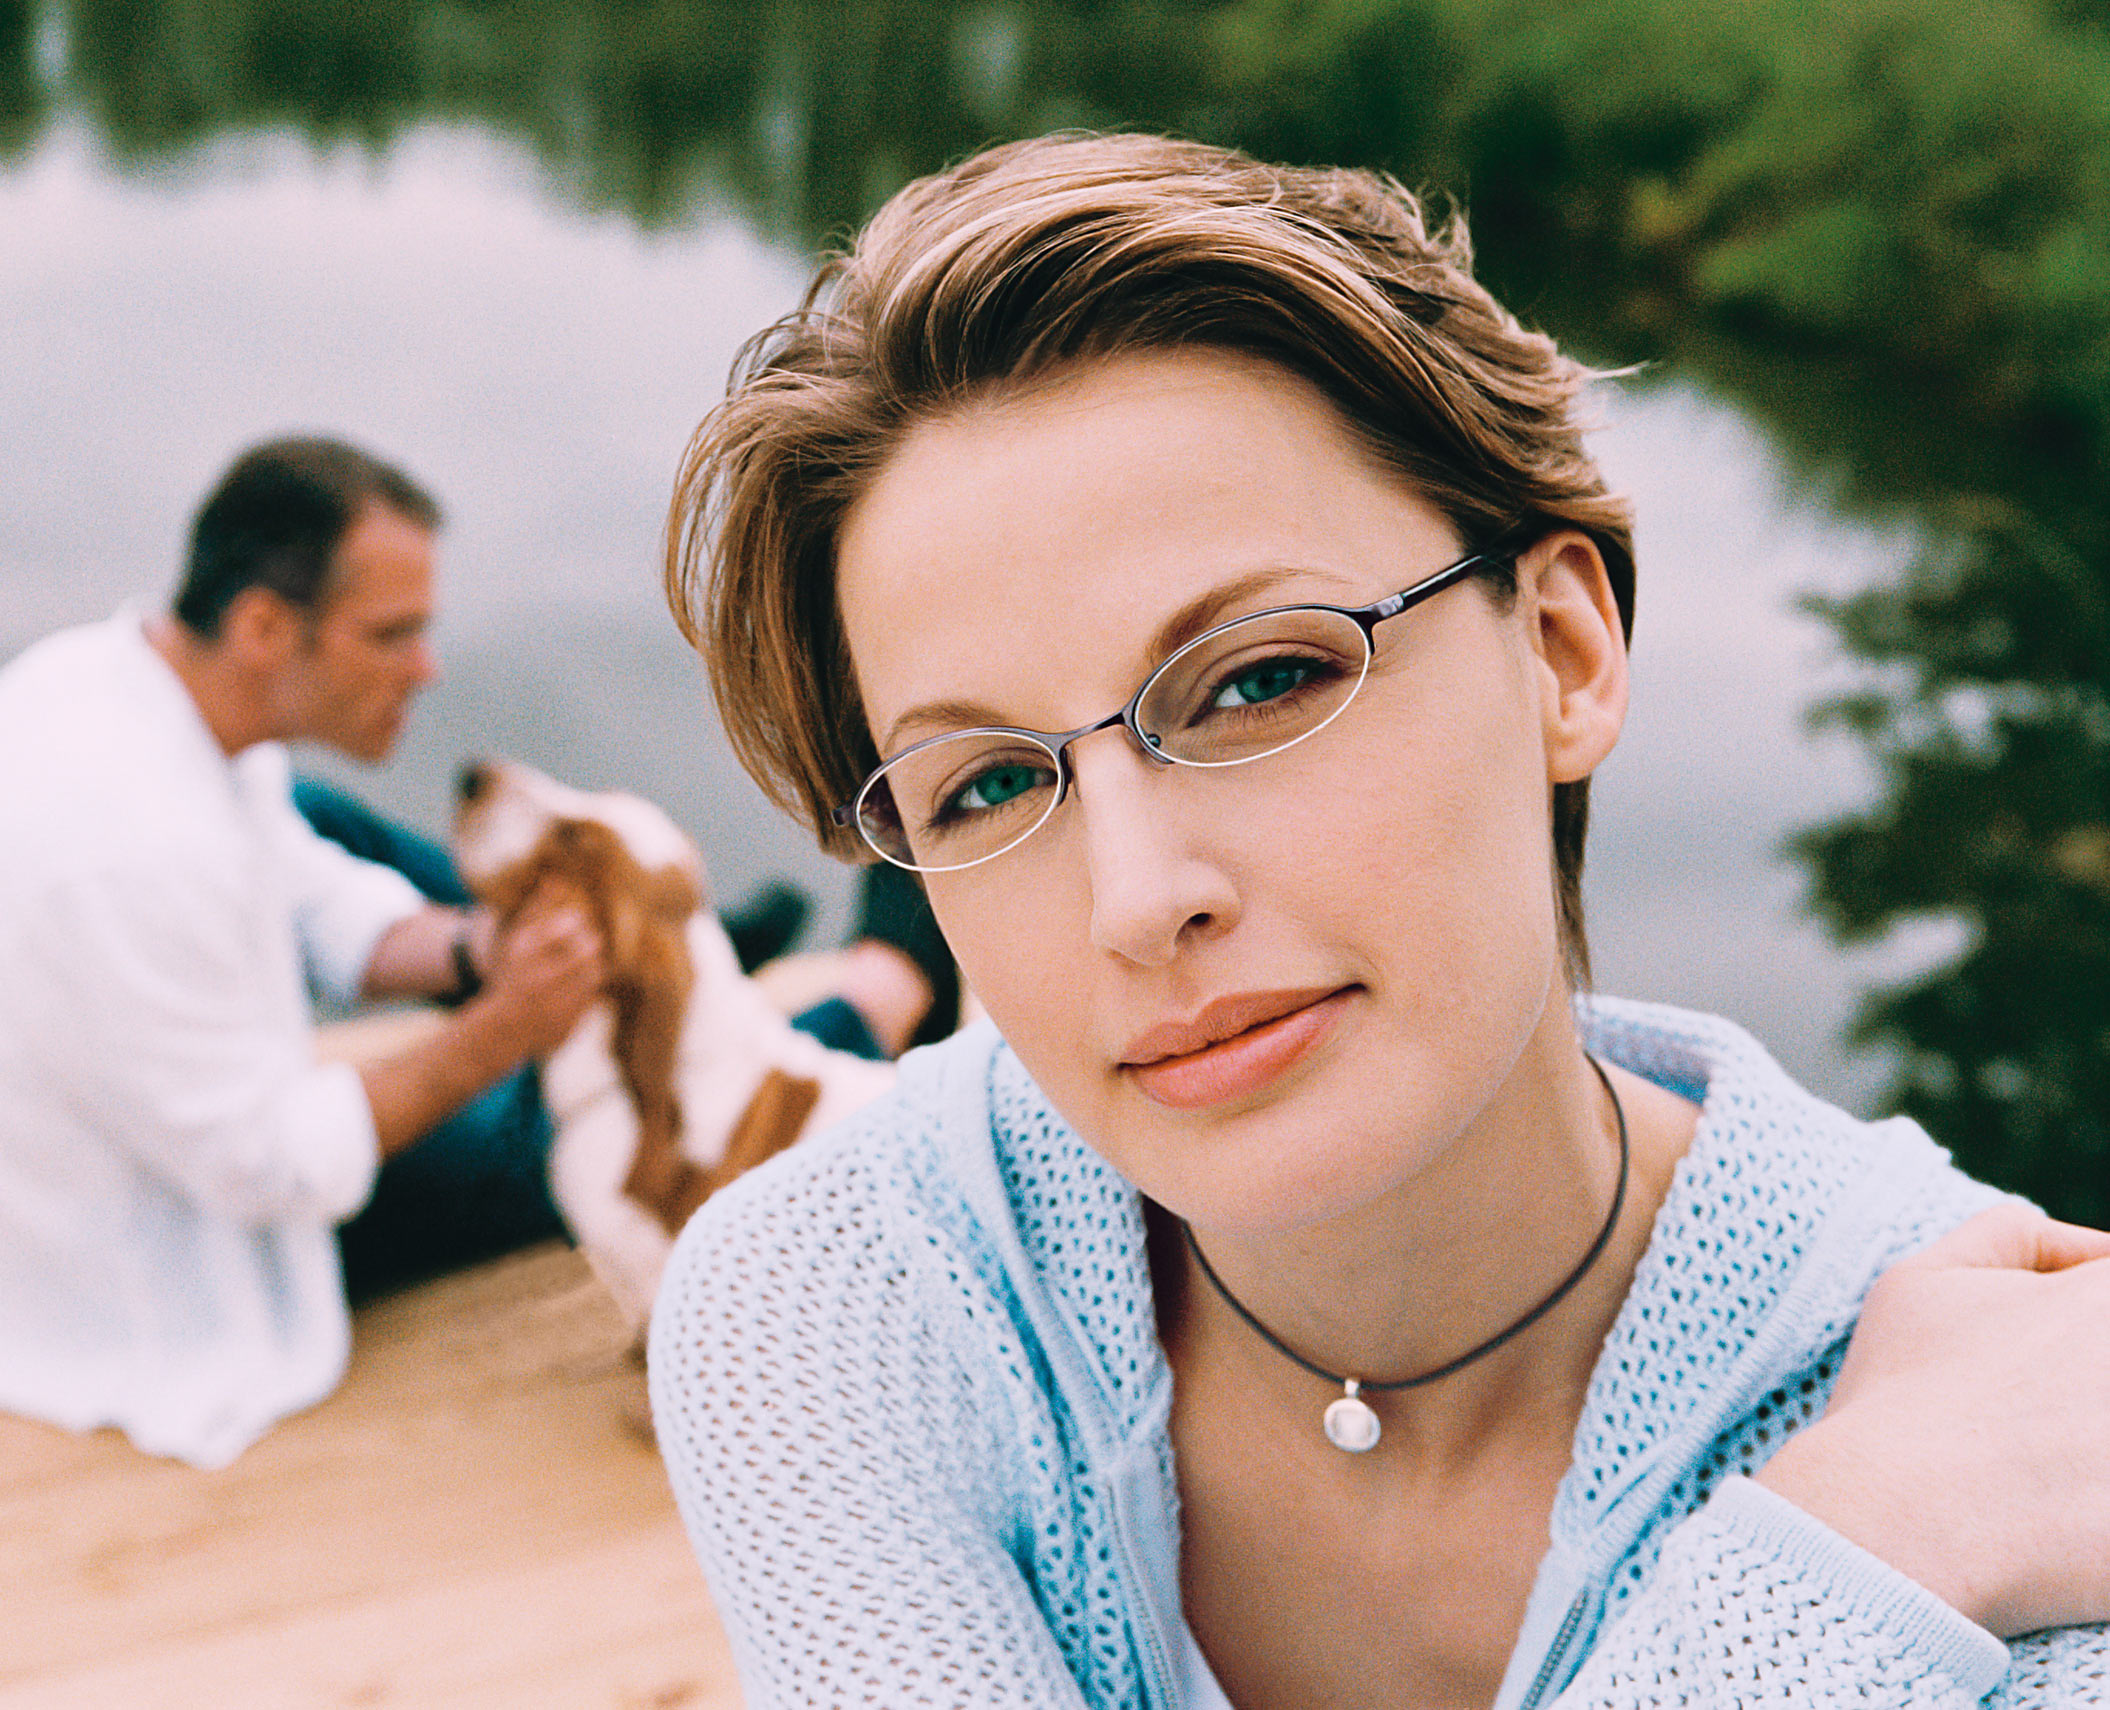 Woman with Glasses Portrait